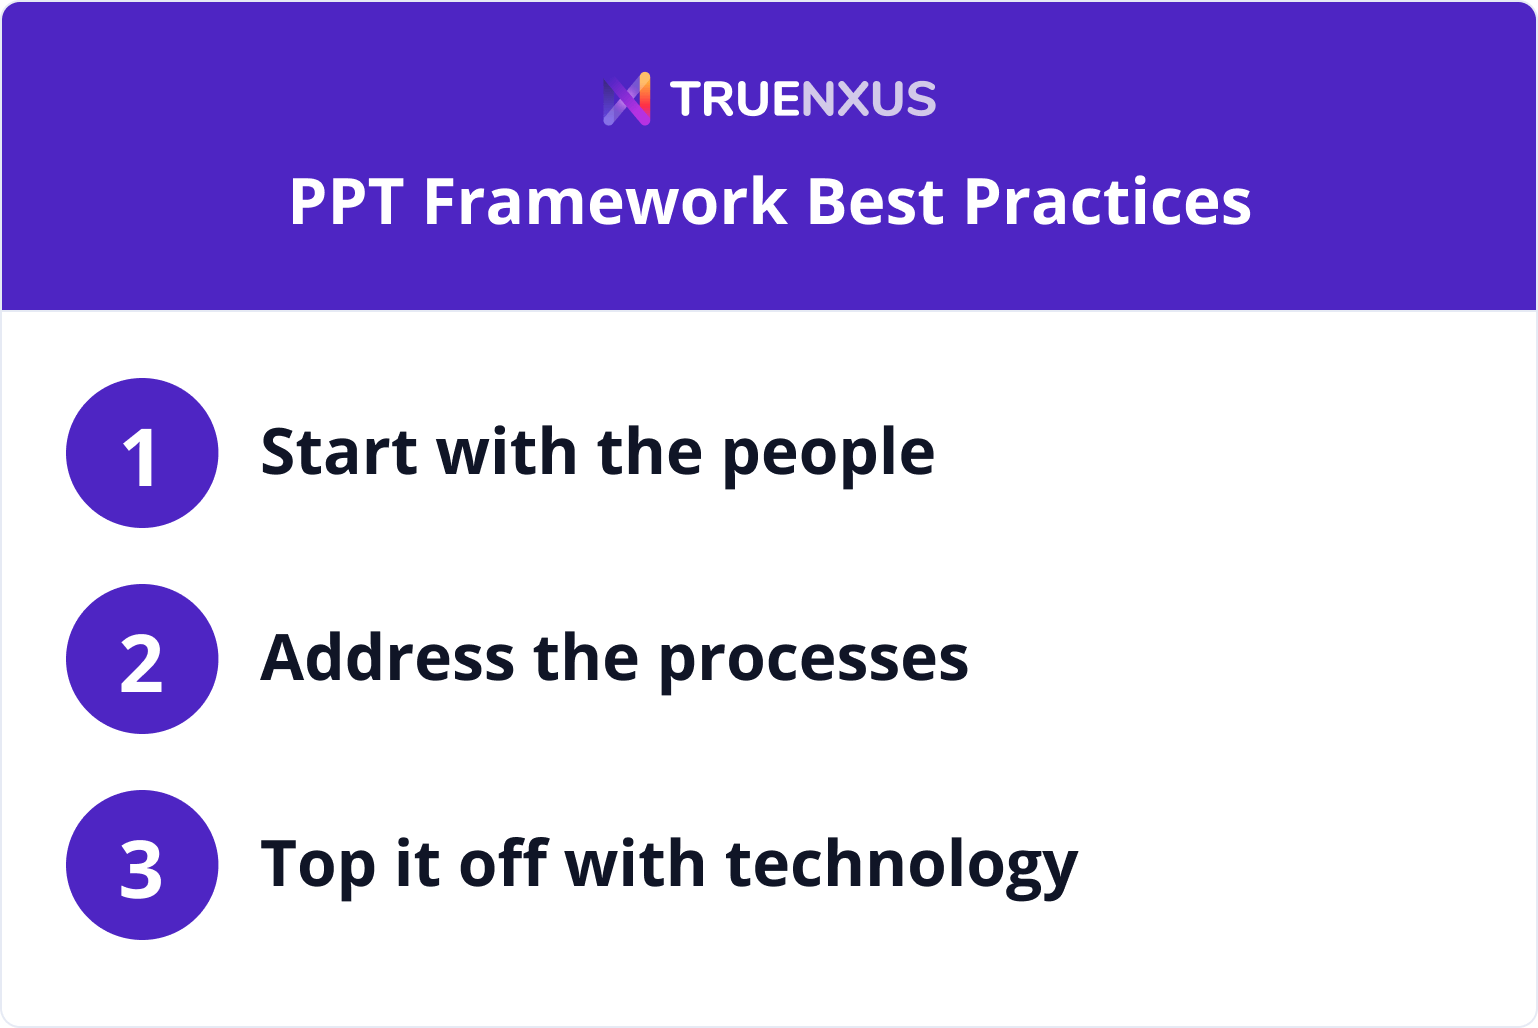 People Process Technology Framework Best Practices